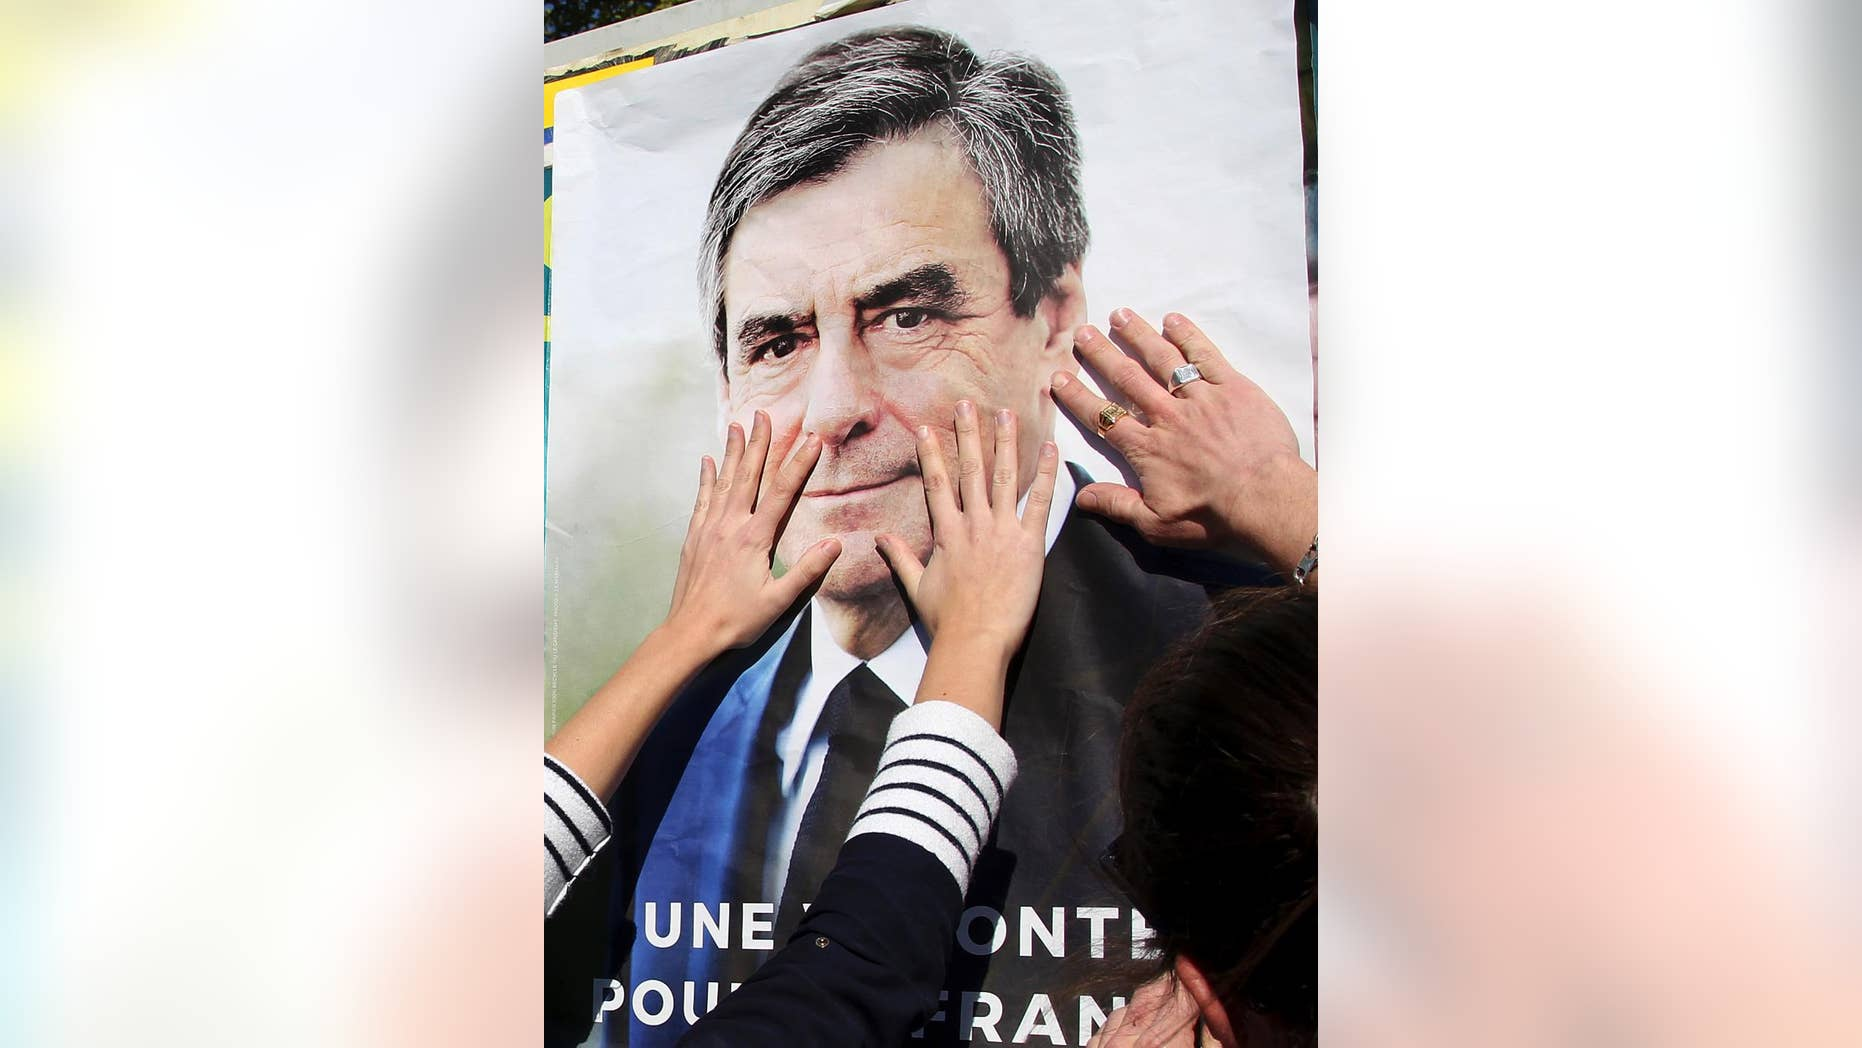 Supporters of conservative presidential candidate Francois Fillon glue a campaign poster in Bayonne, southwestern France, Wednesday, April 19, 2017. The two-round presidential election is set for April 23 and May 7. (AP Photo/Bob Edme)